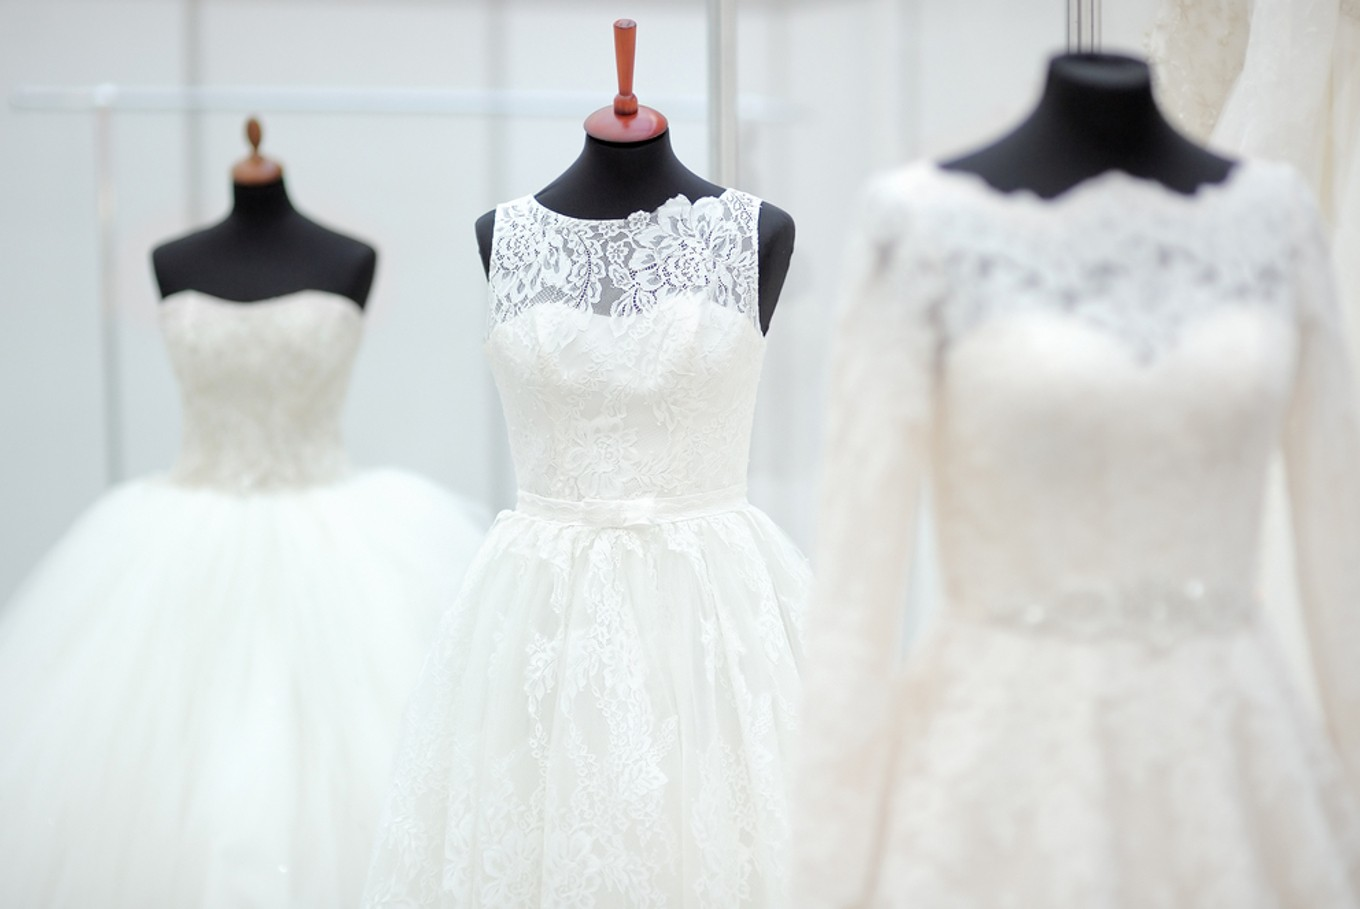 Hand-painted dresses on display at wedding exhibition - Lifestyle ...